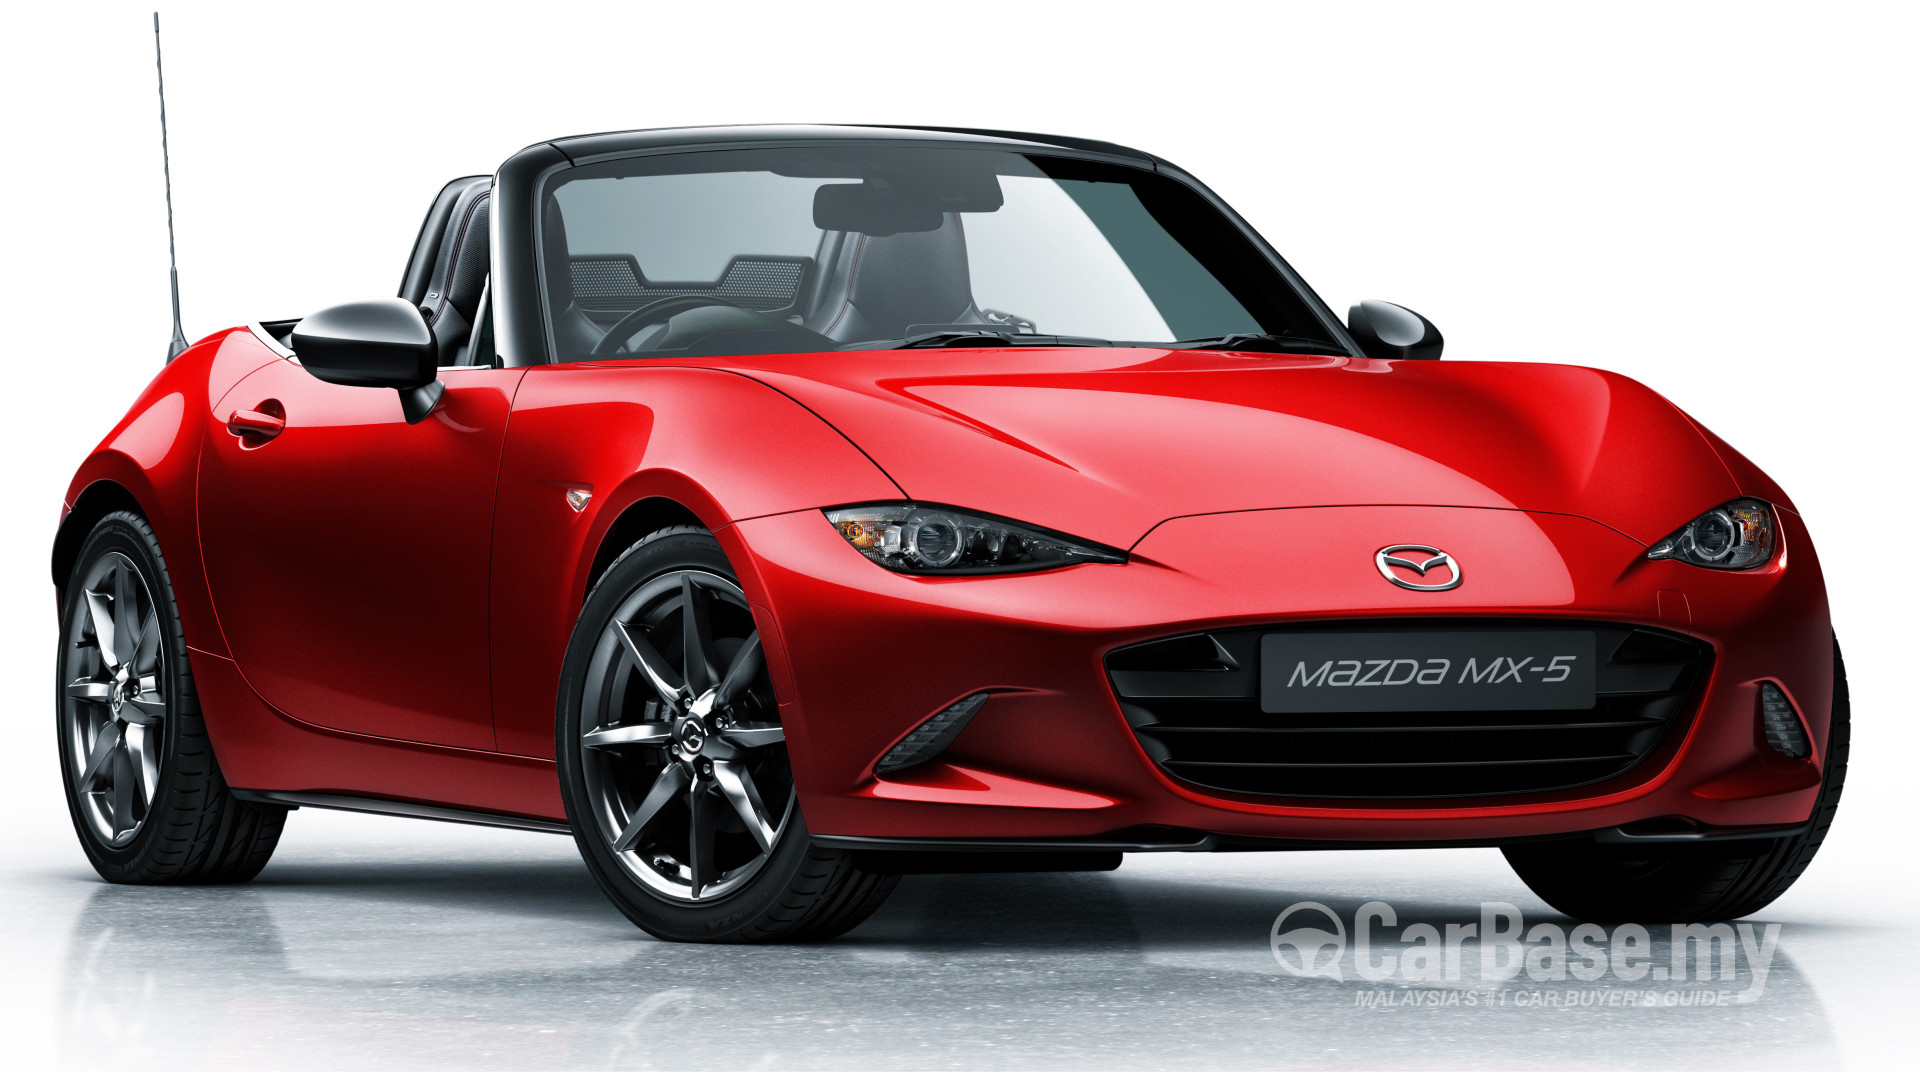 mazda mx 5 nd 2015 exterior image in malaysia reviews. Black Bedroom Furniture Sets. Home Design Ideas